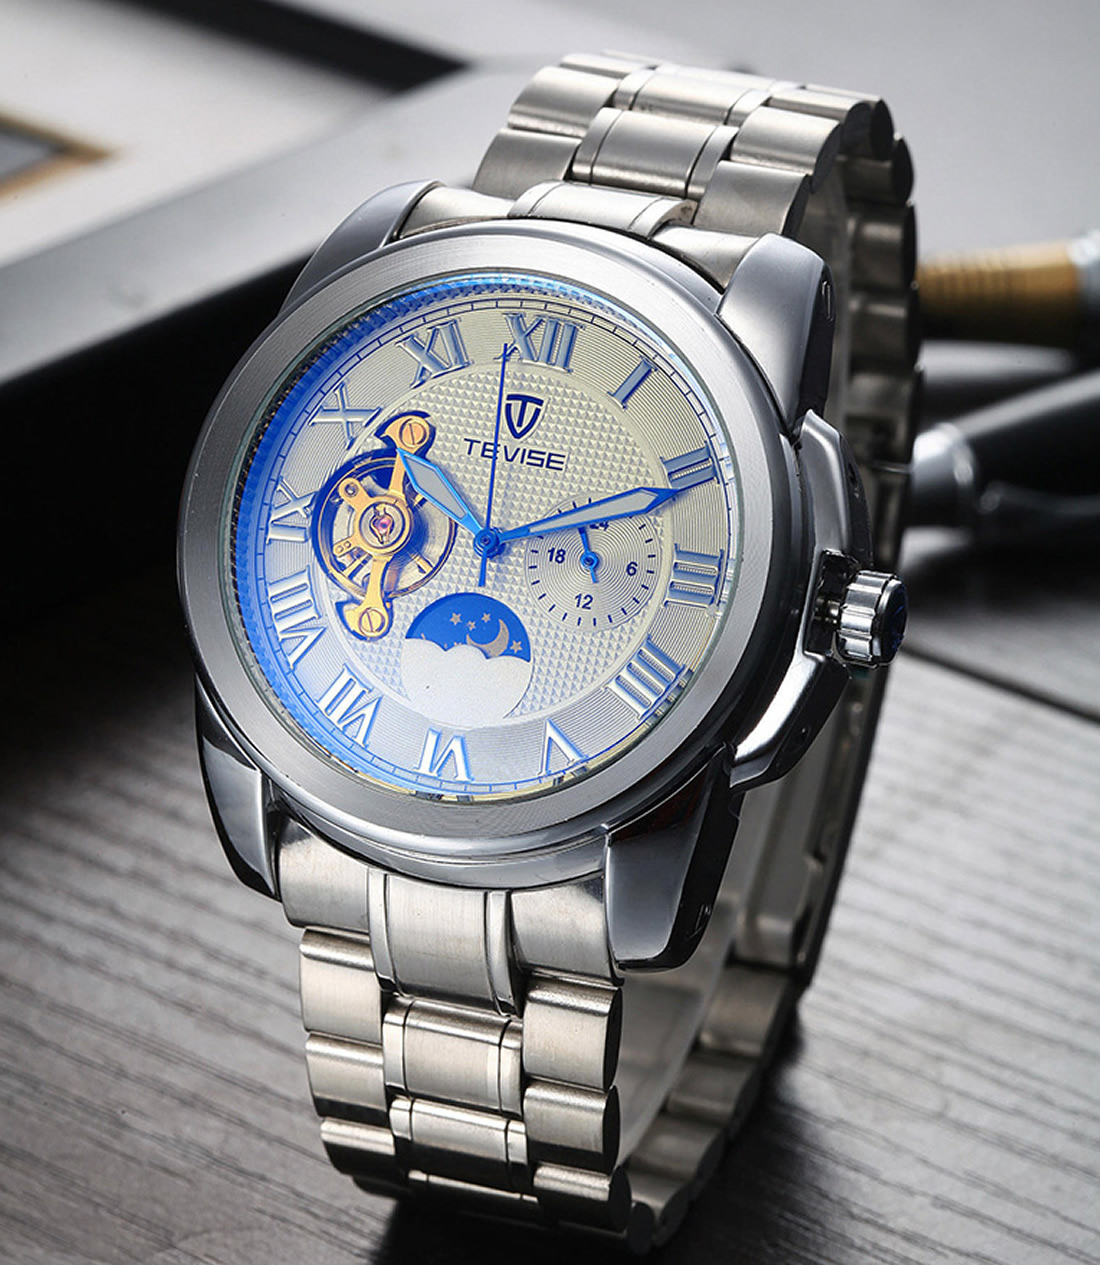 Top Brand Luxury Men Watch Luxury sport Quartz 30M waterproof watches male stainless steel new auto date wristwatches relojes skmei luxury brand stainless steel strap analog display date moon phase men s quartz watch casual watch waterproof men watches